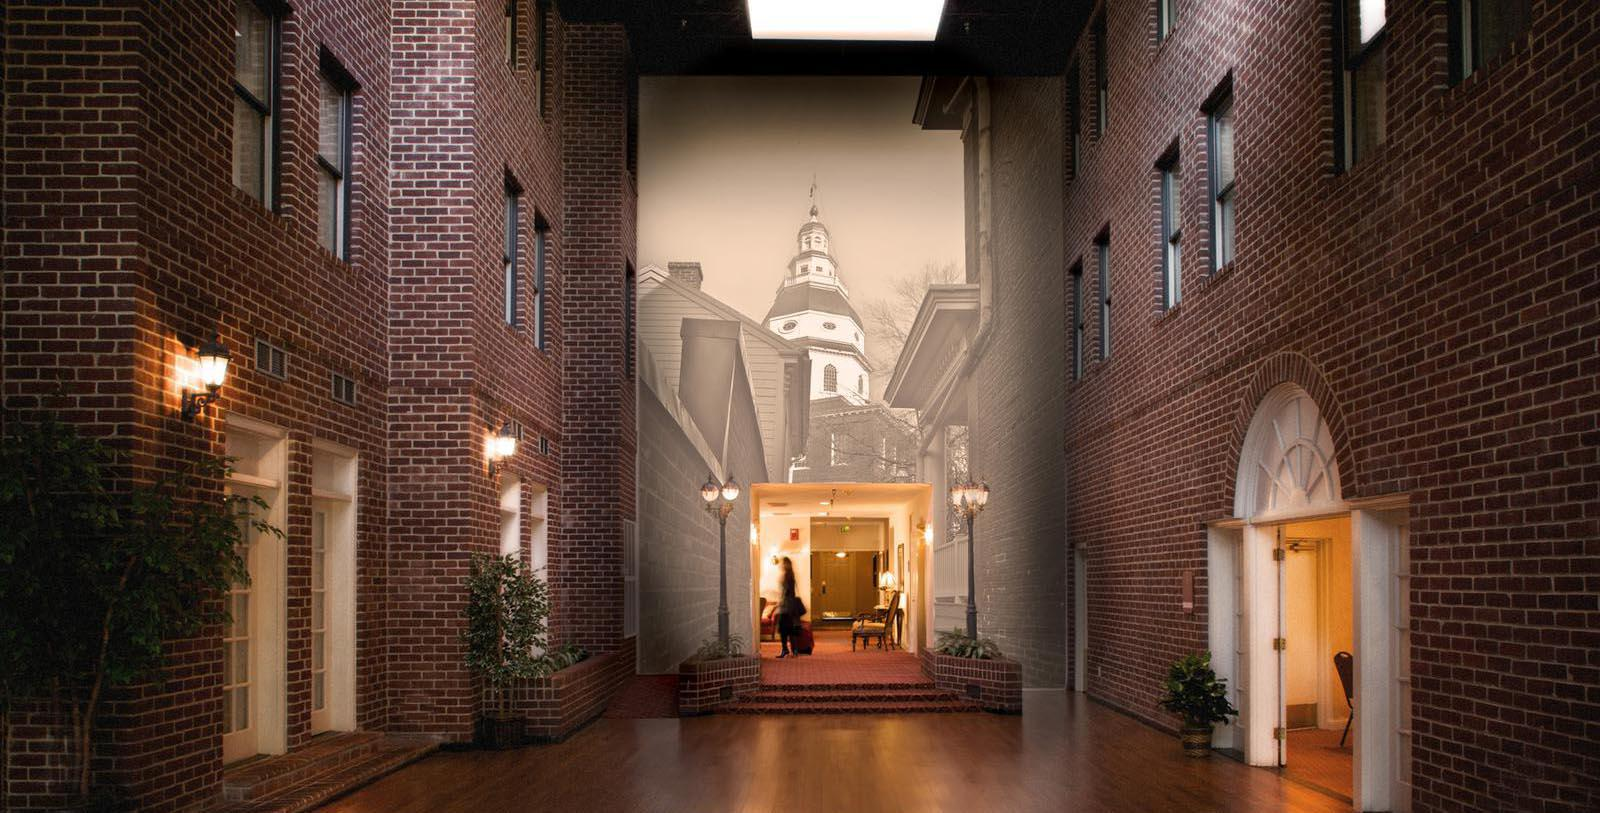 Image of Lobby, Historic Inns of Annapolis in Annapolis, Maryland, 1727, Member of Historic Hotels of America, DIscover